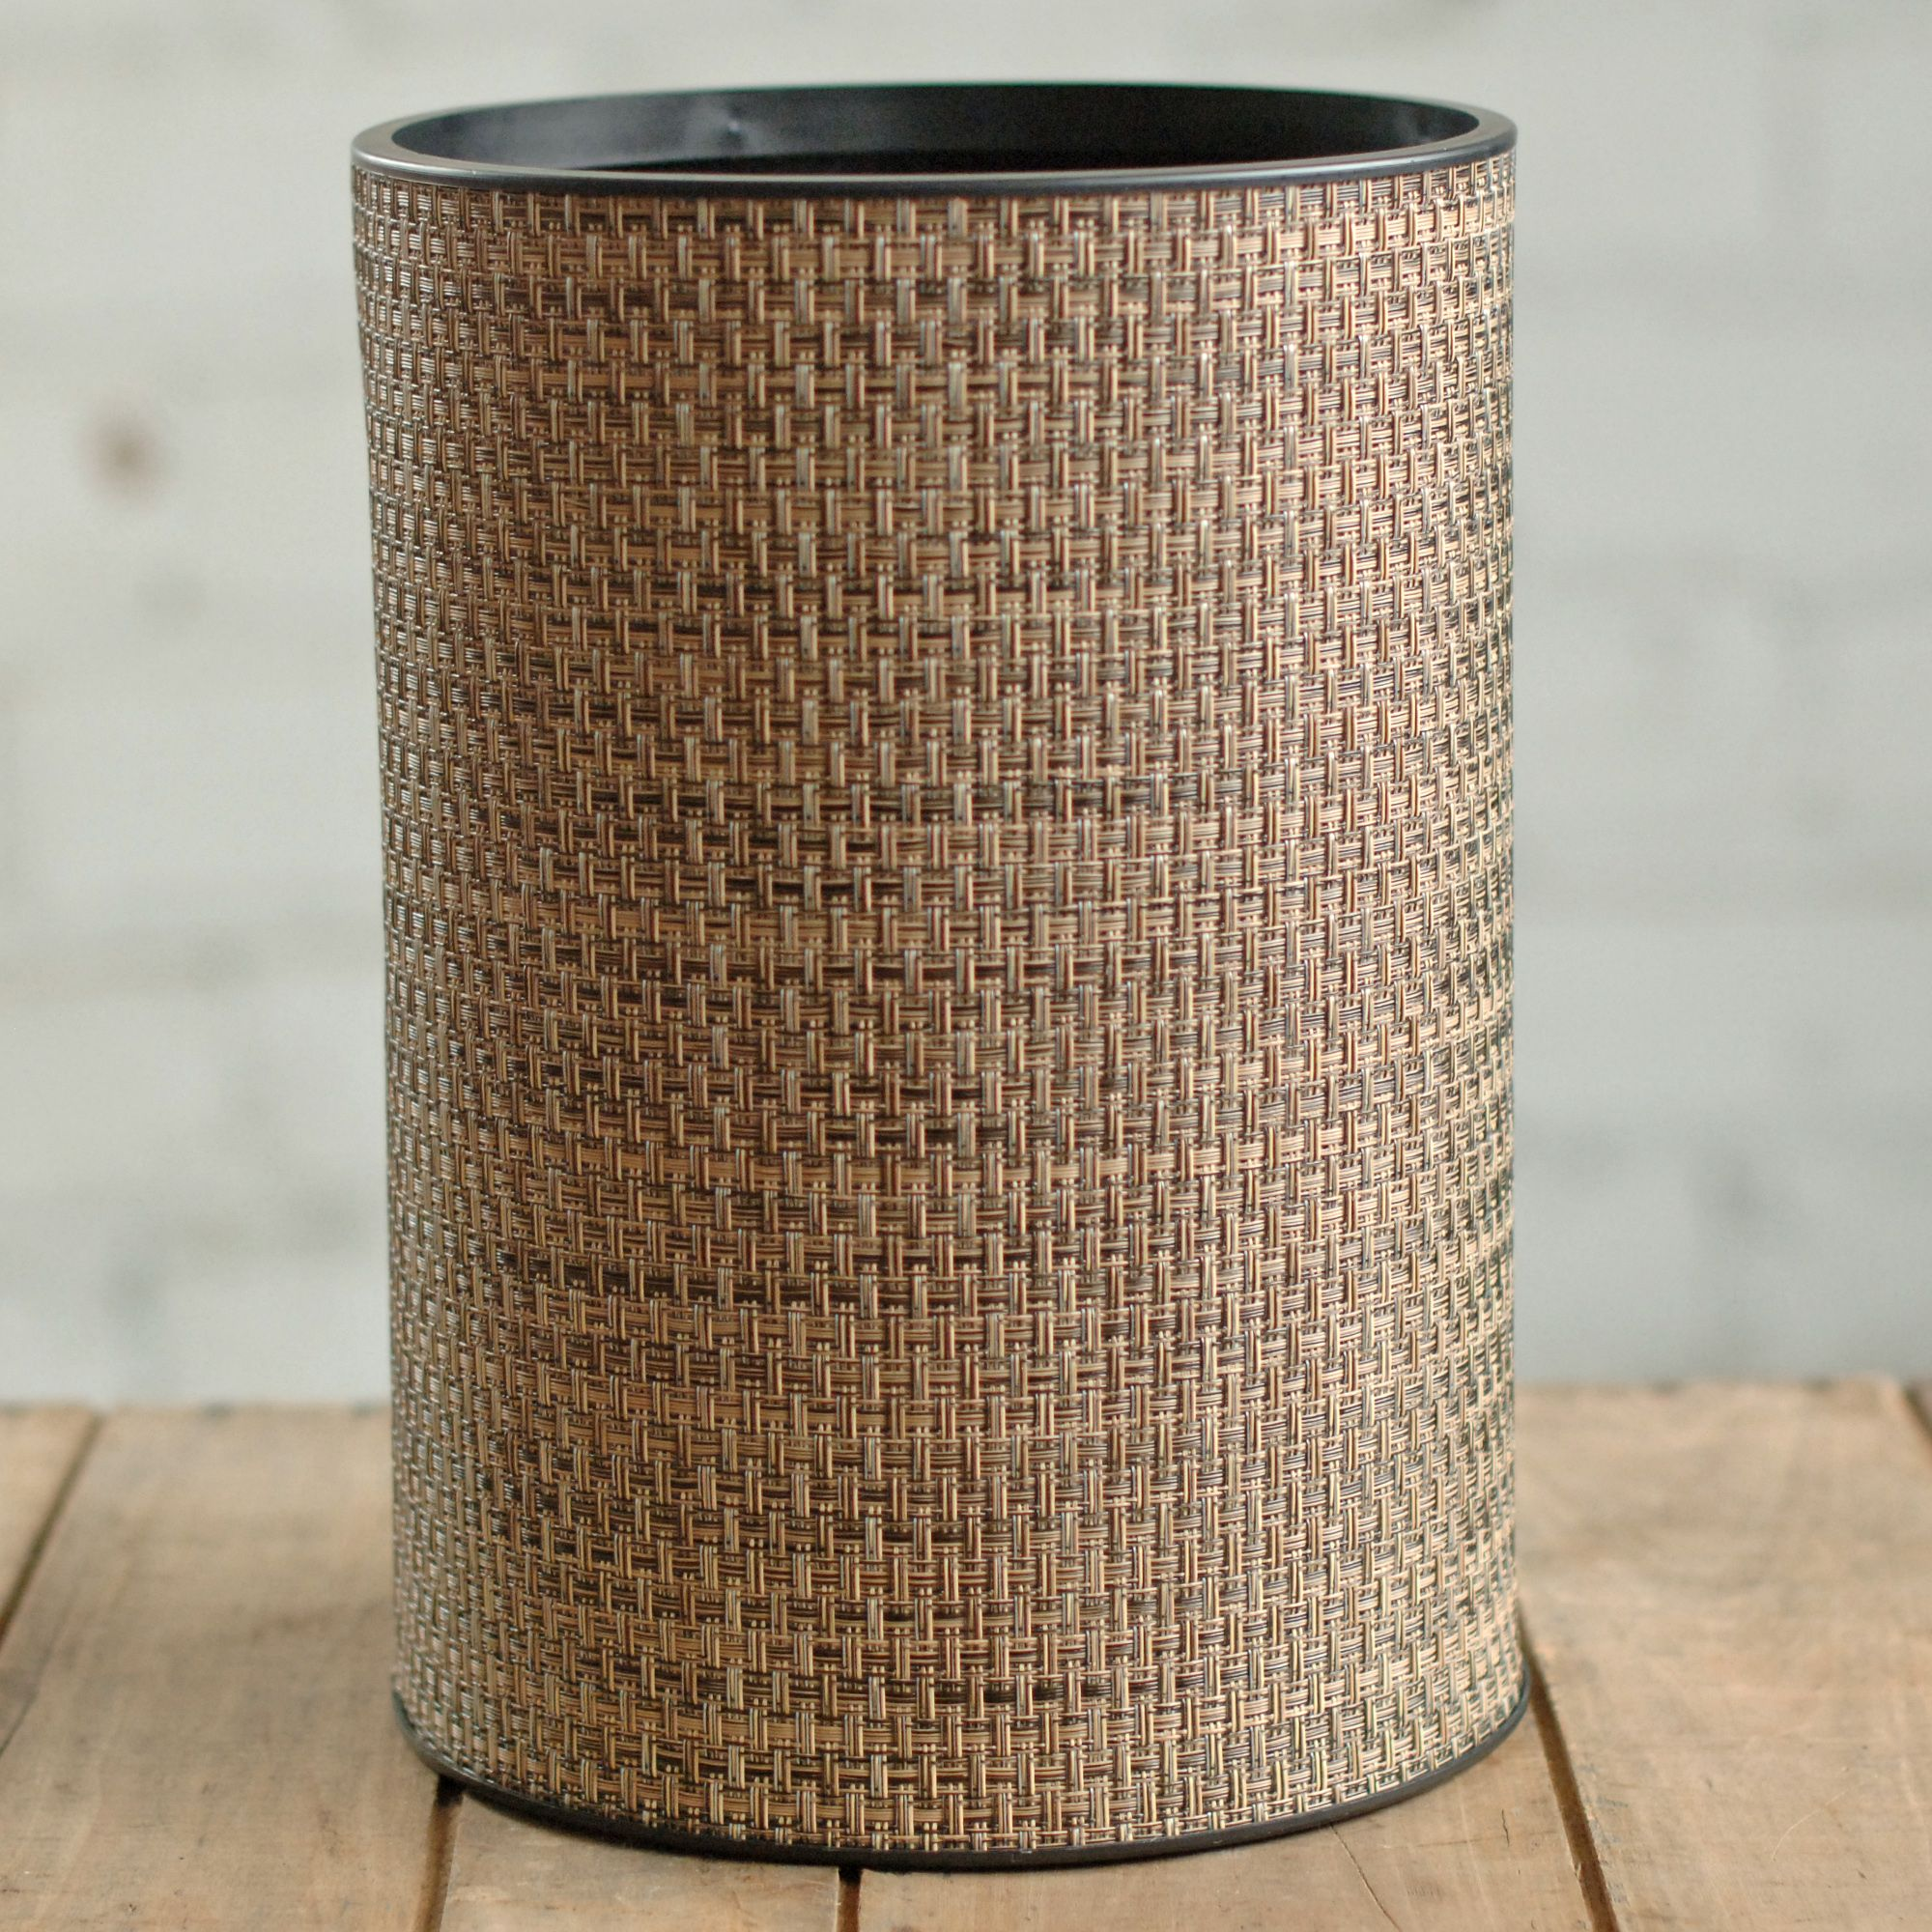 This contemporary standard wastebasket is composed of woven PVC/polyester fabric. Cleaning is easily accomplished with a damp cloth.